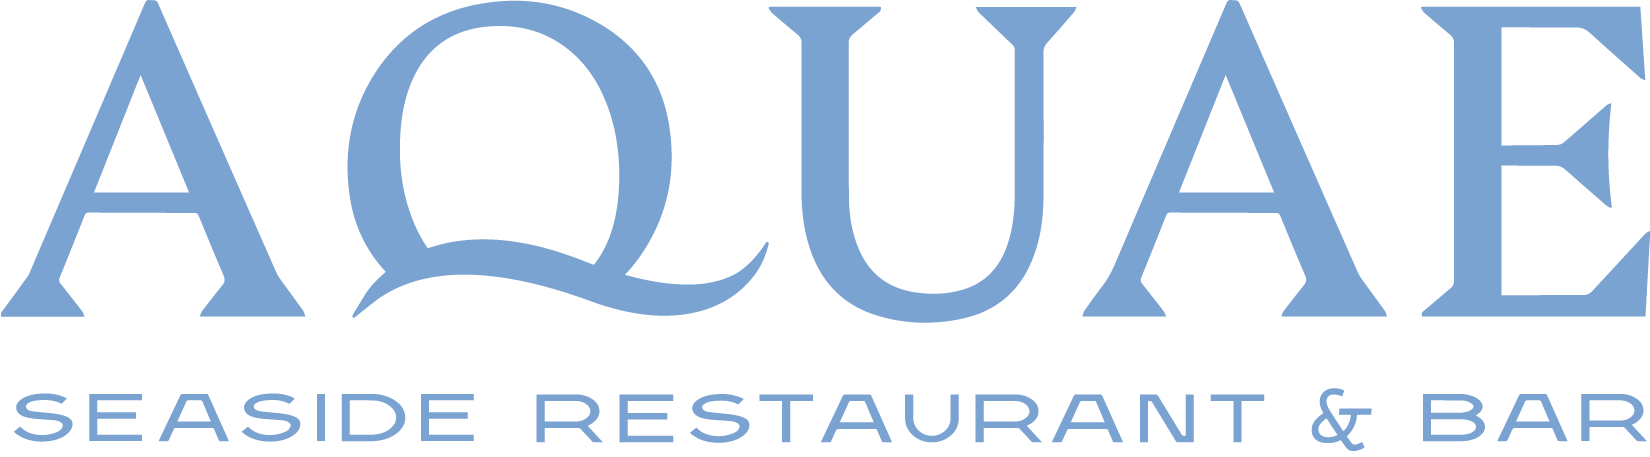 Aquae Seaside Restaurant & Bar